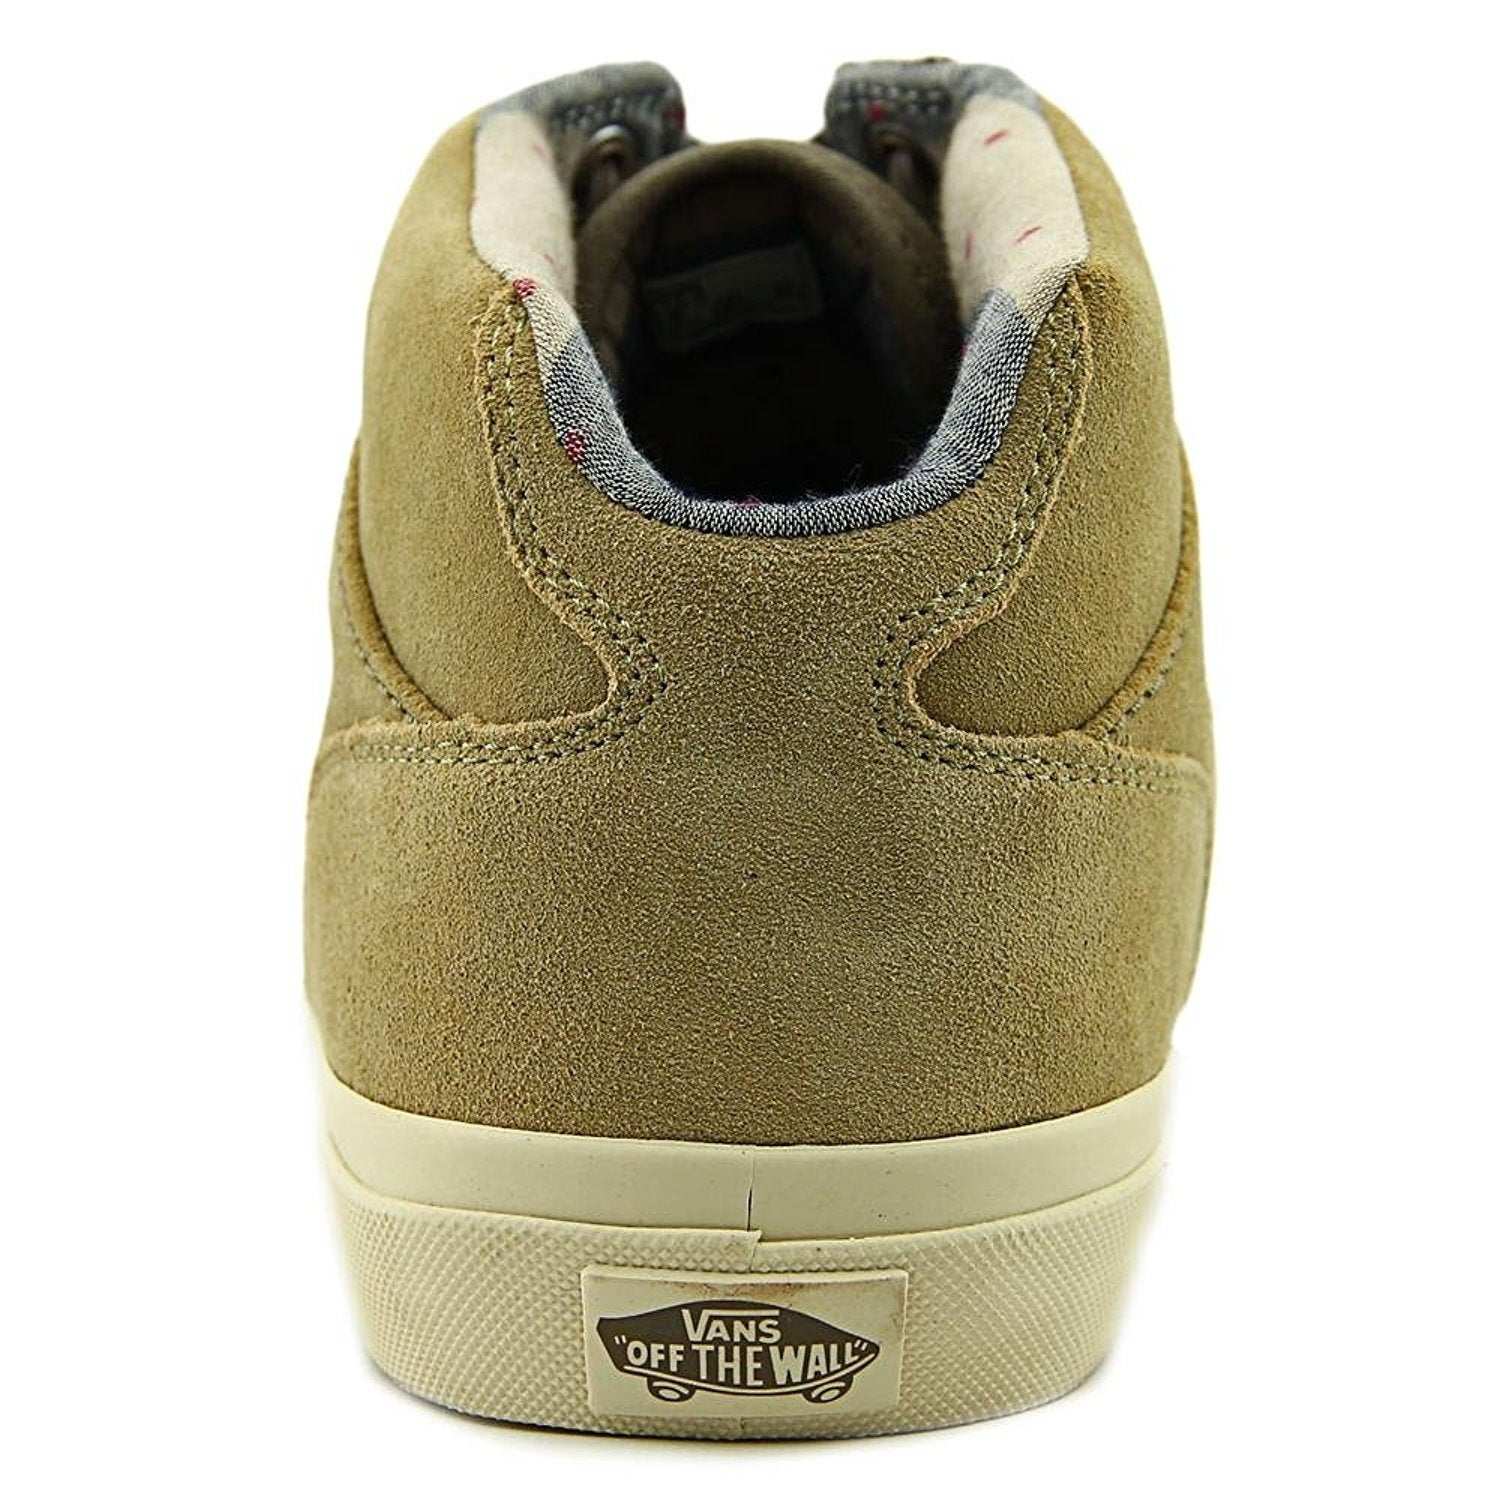 vans mens bedford boot sneakers